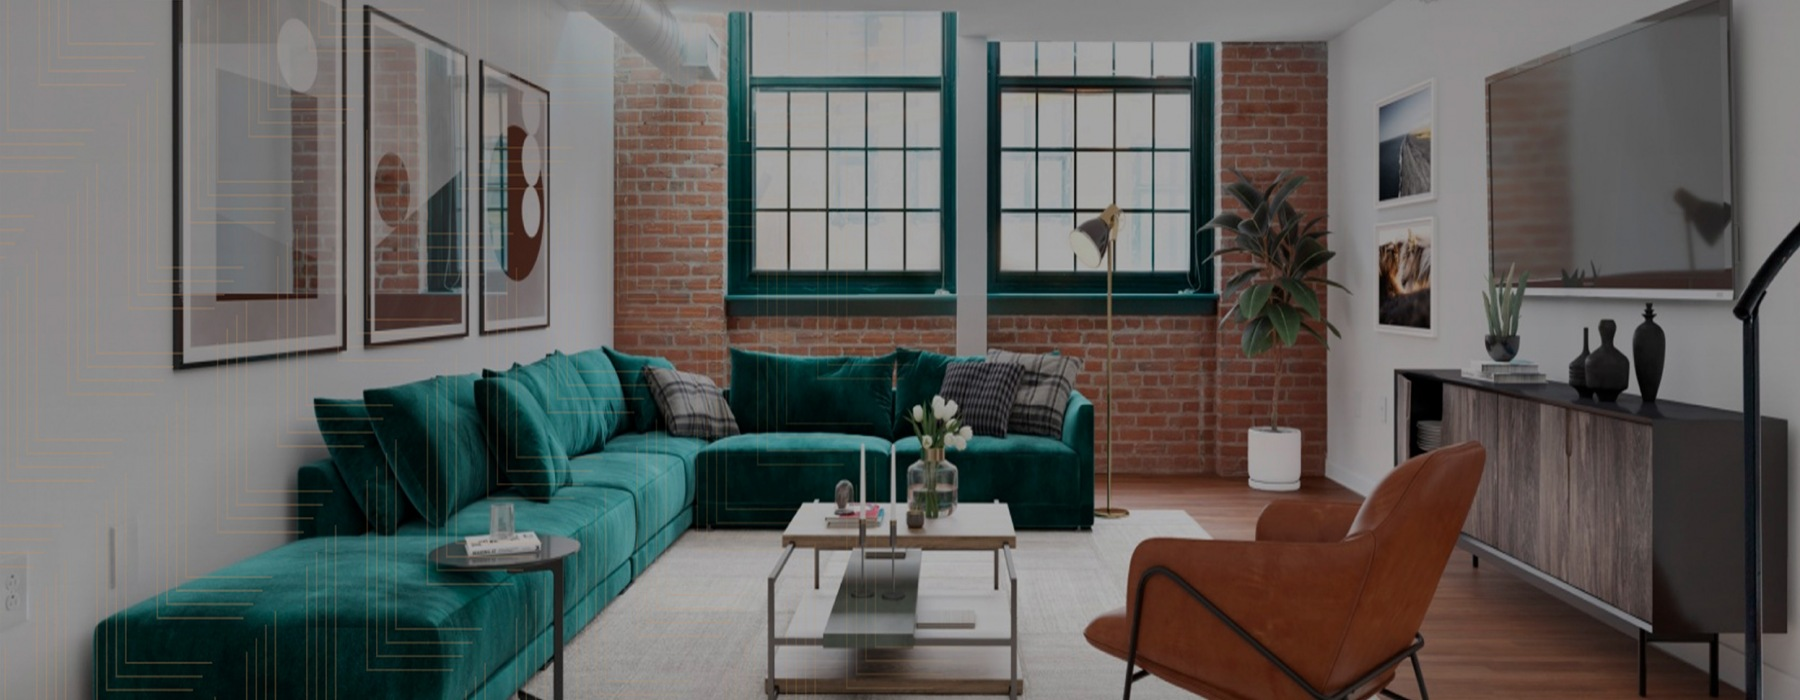 Open loft space with large windows and brick walls